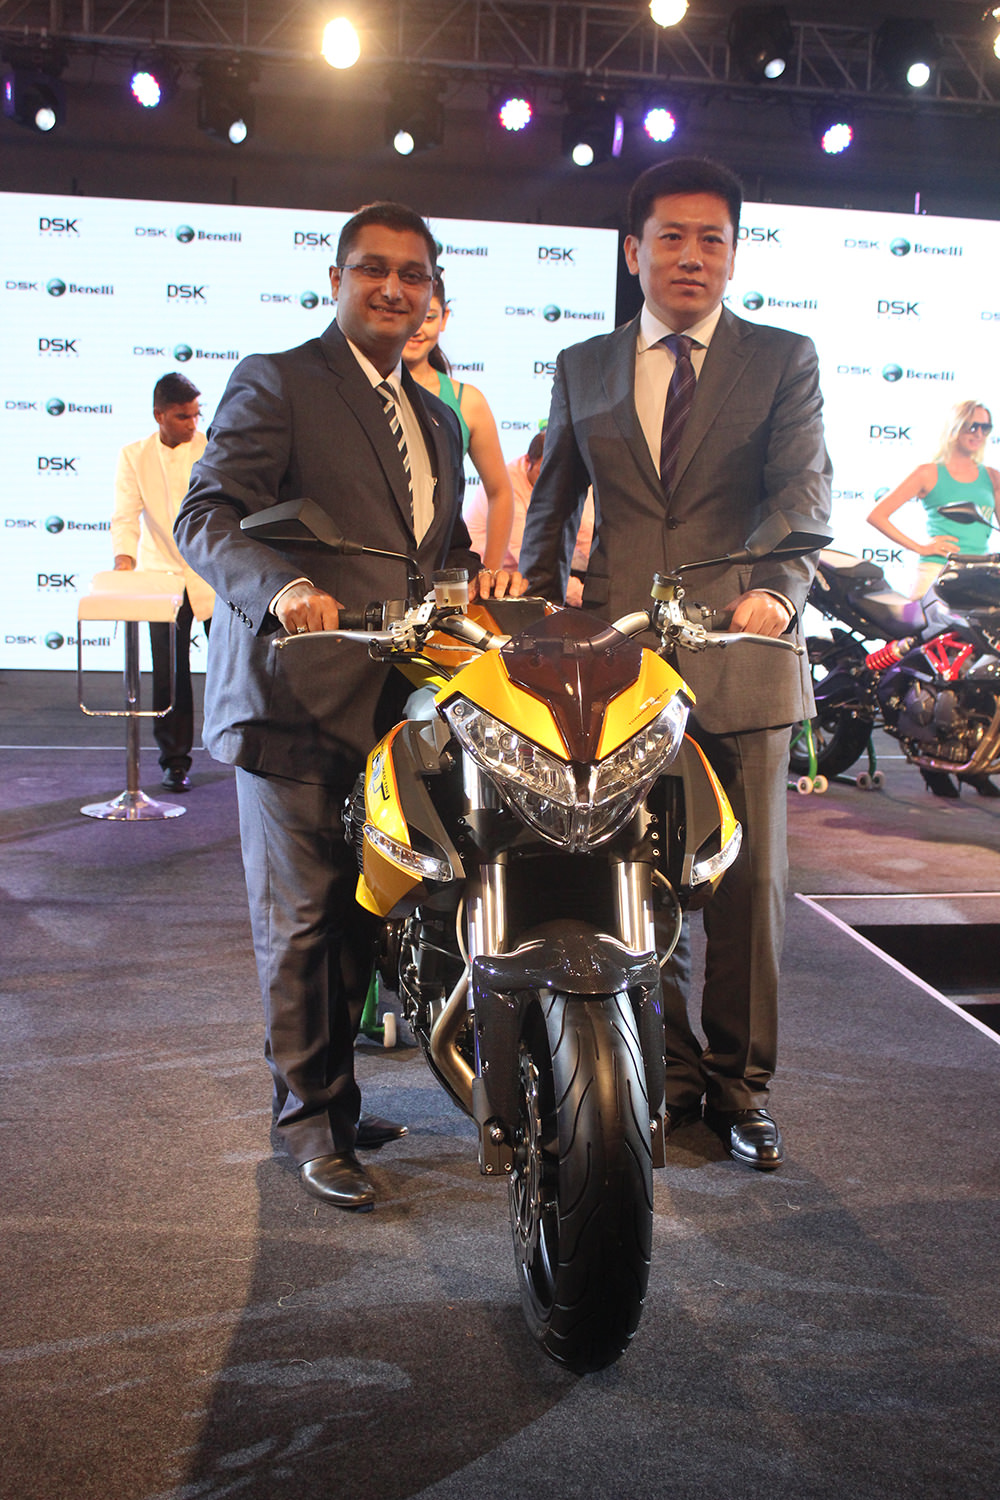 Benelli Launched in India